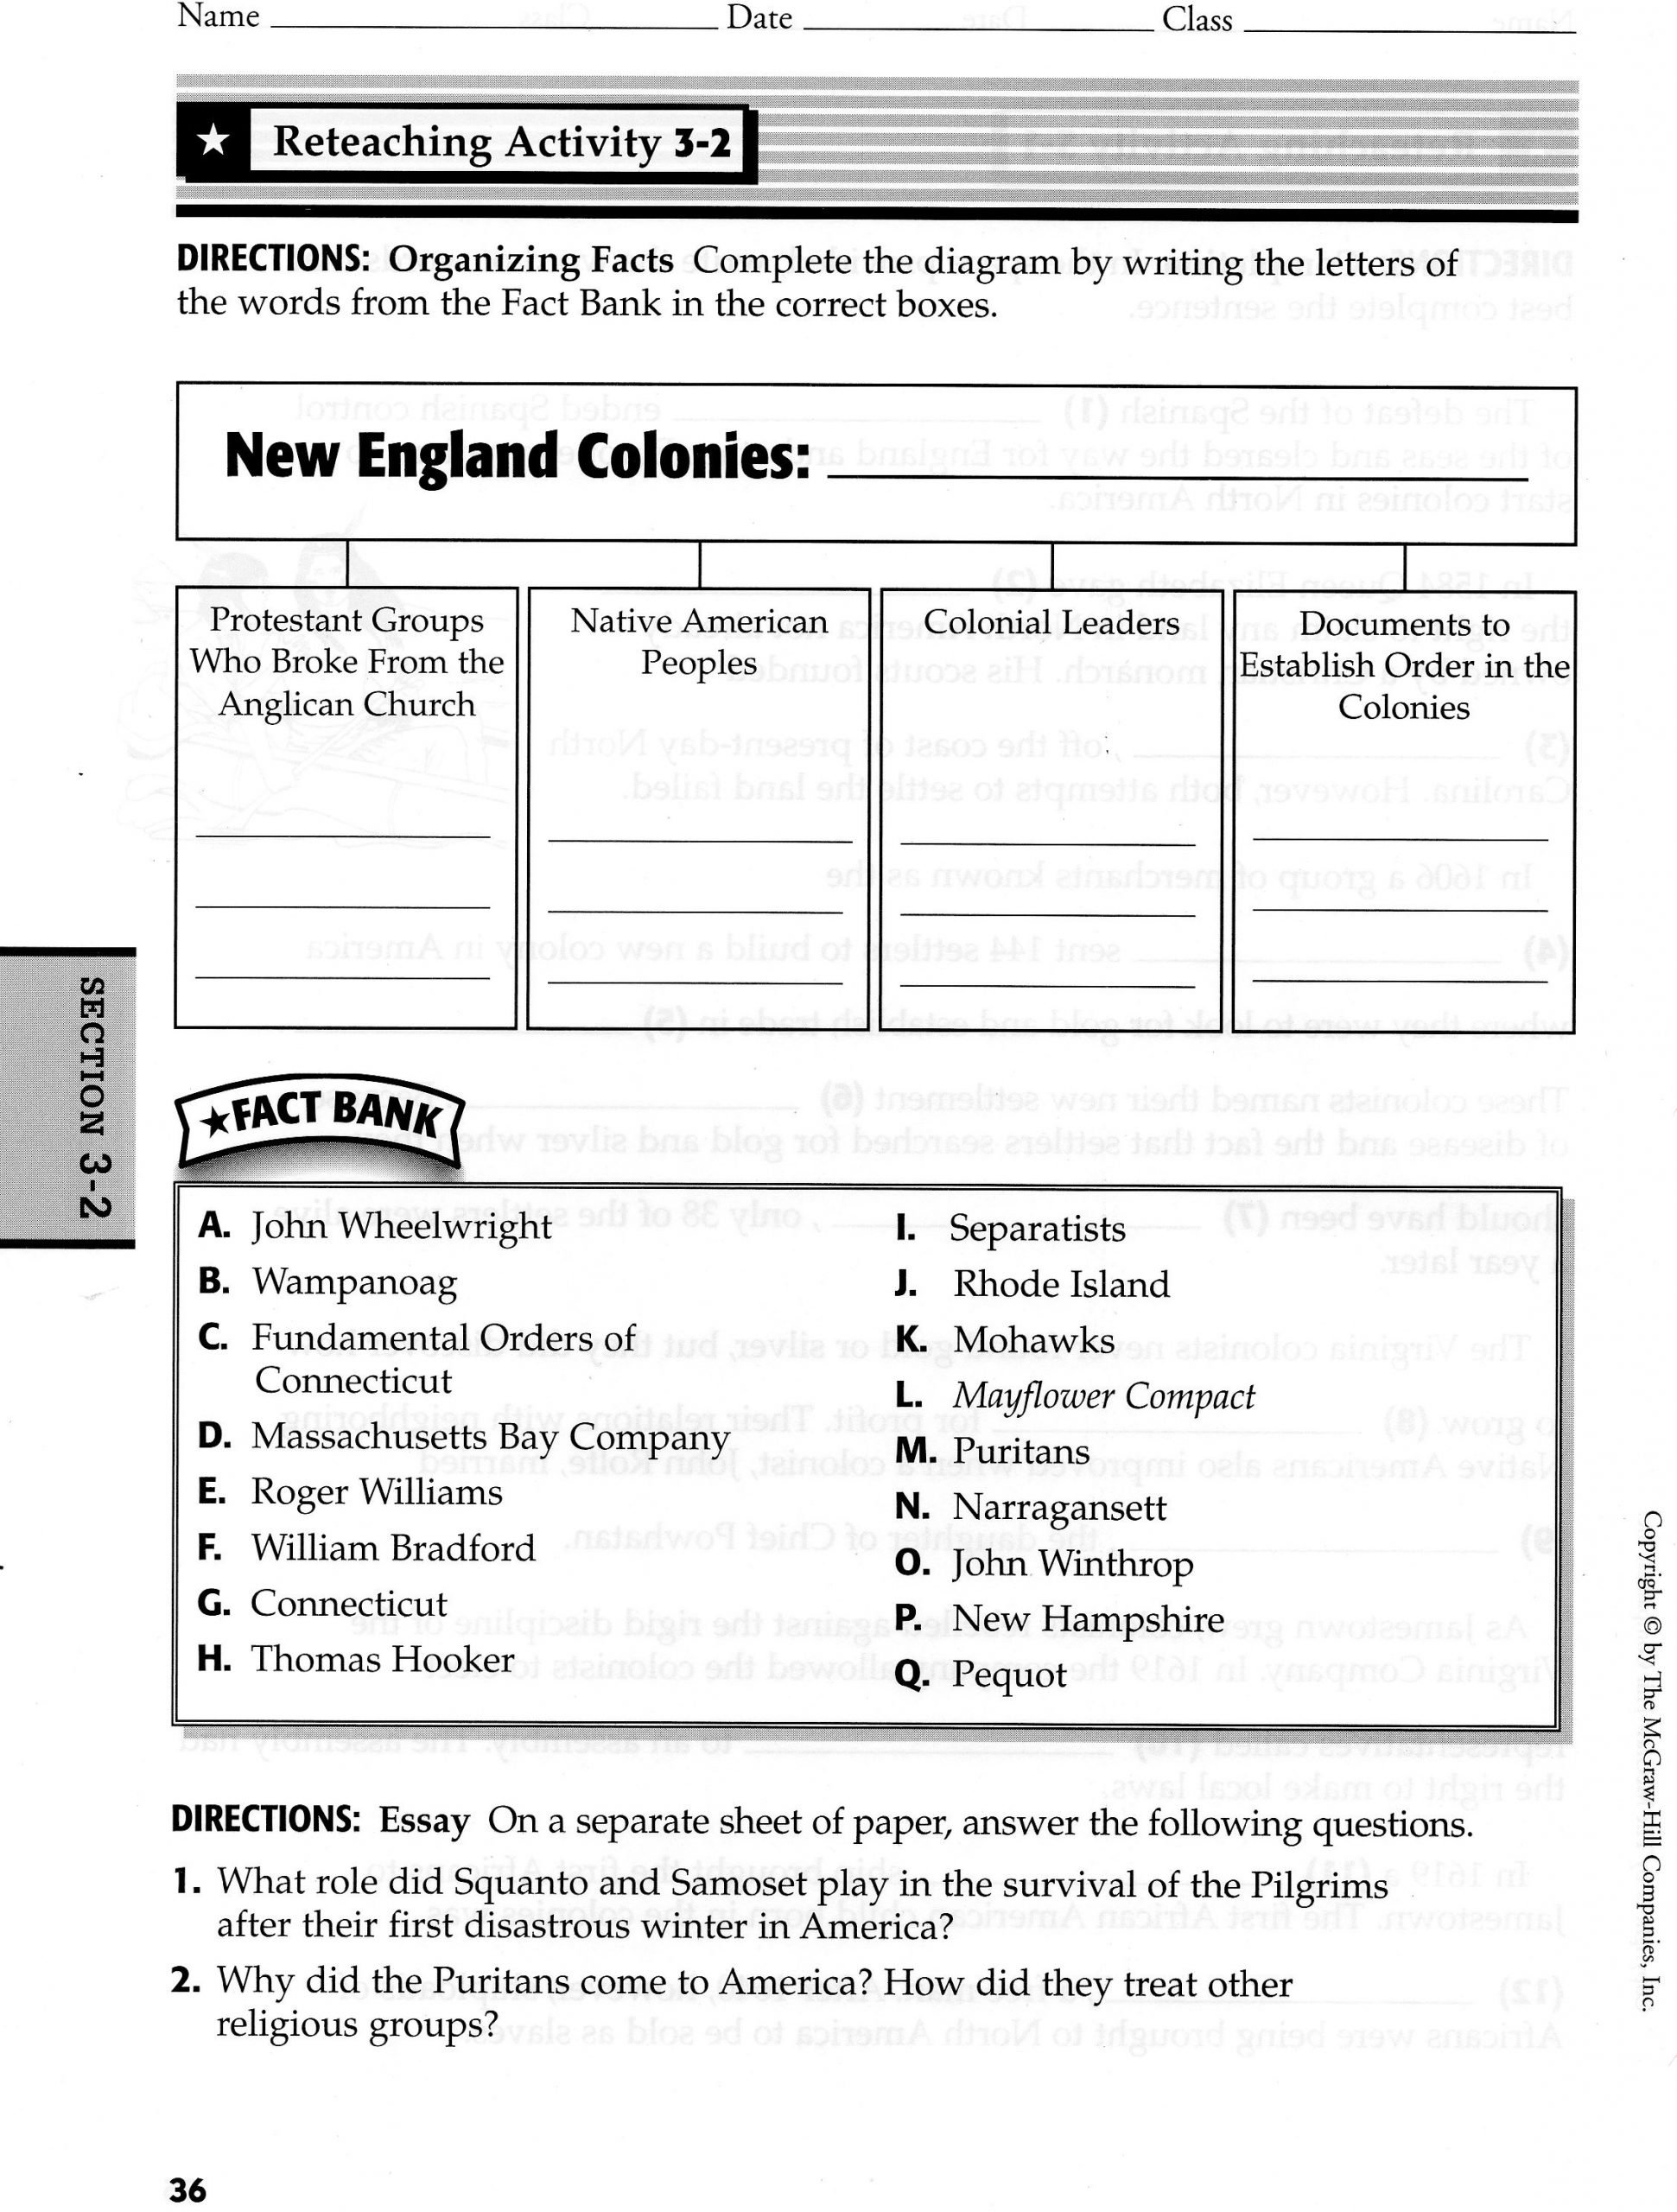 Slavery In The Colonies Worksheet